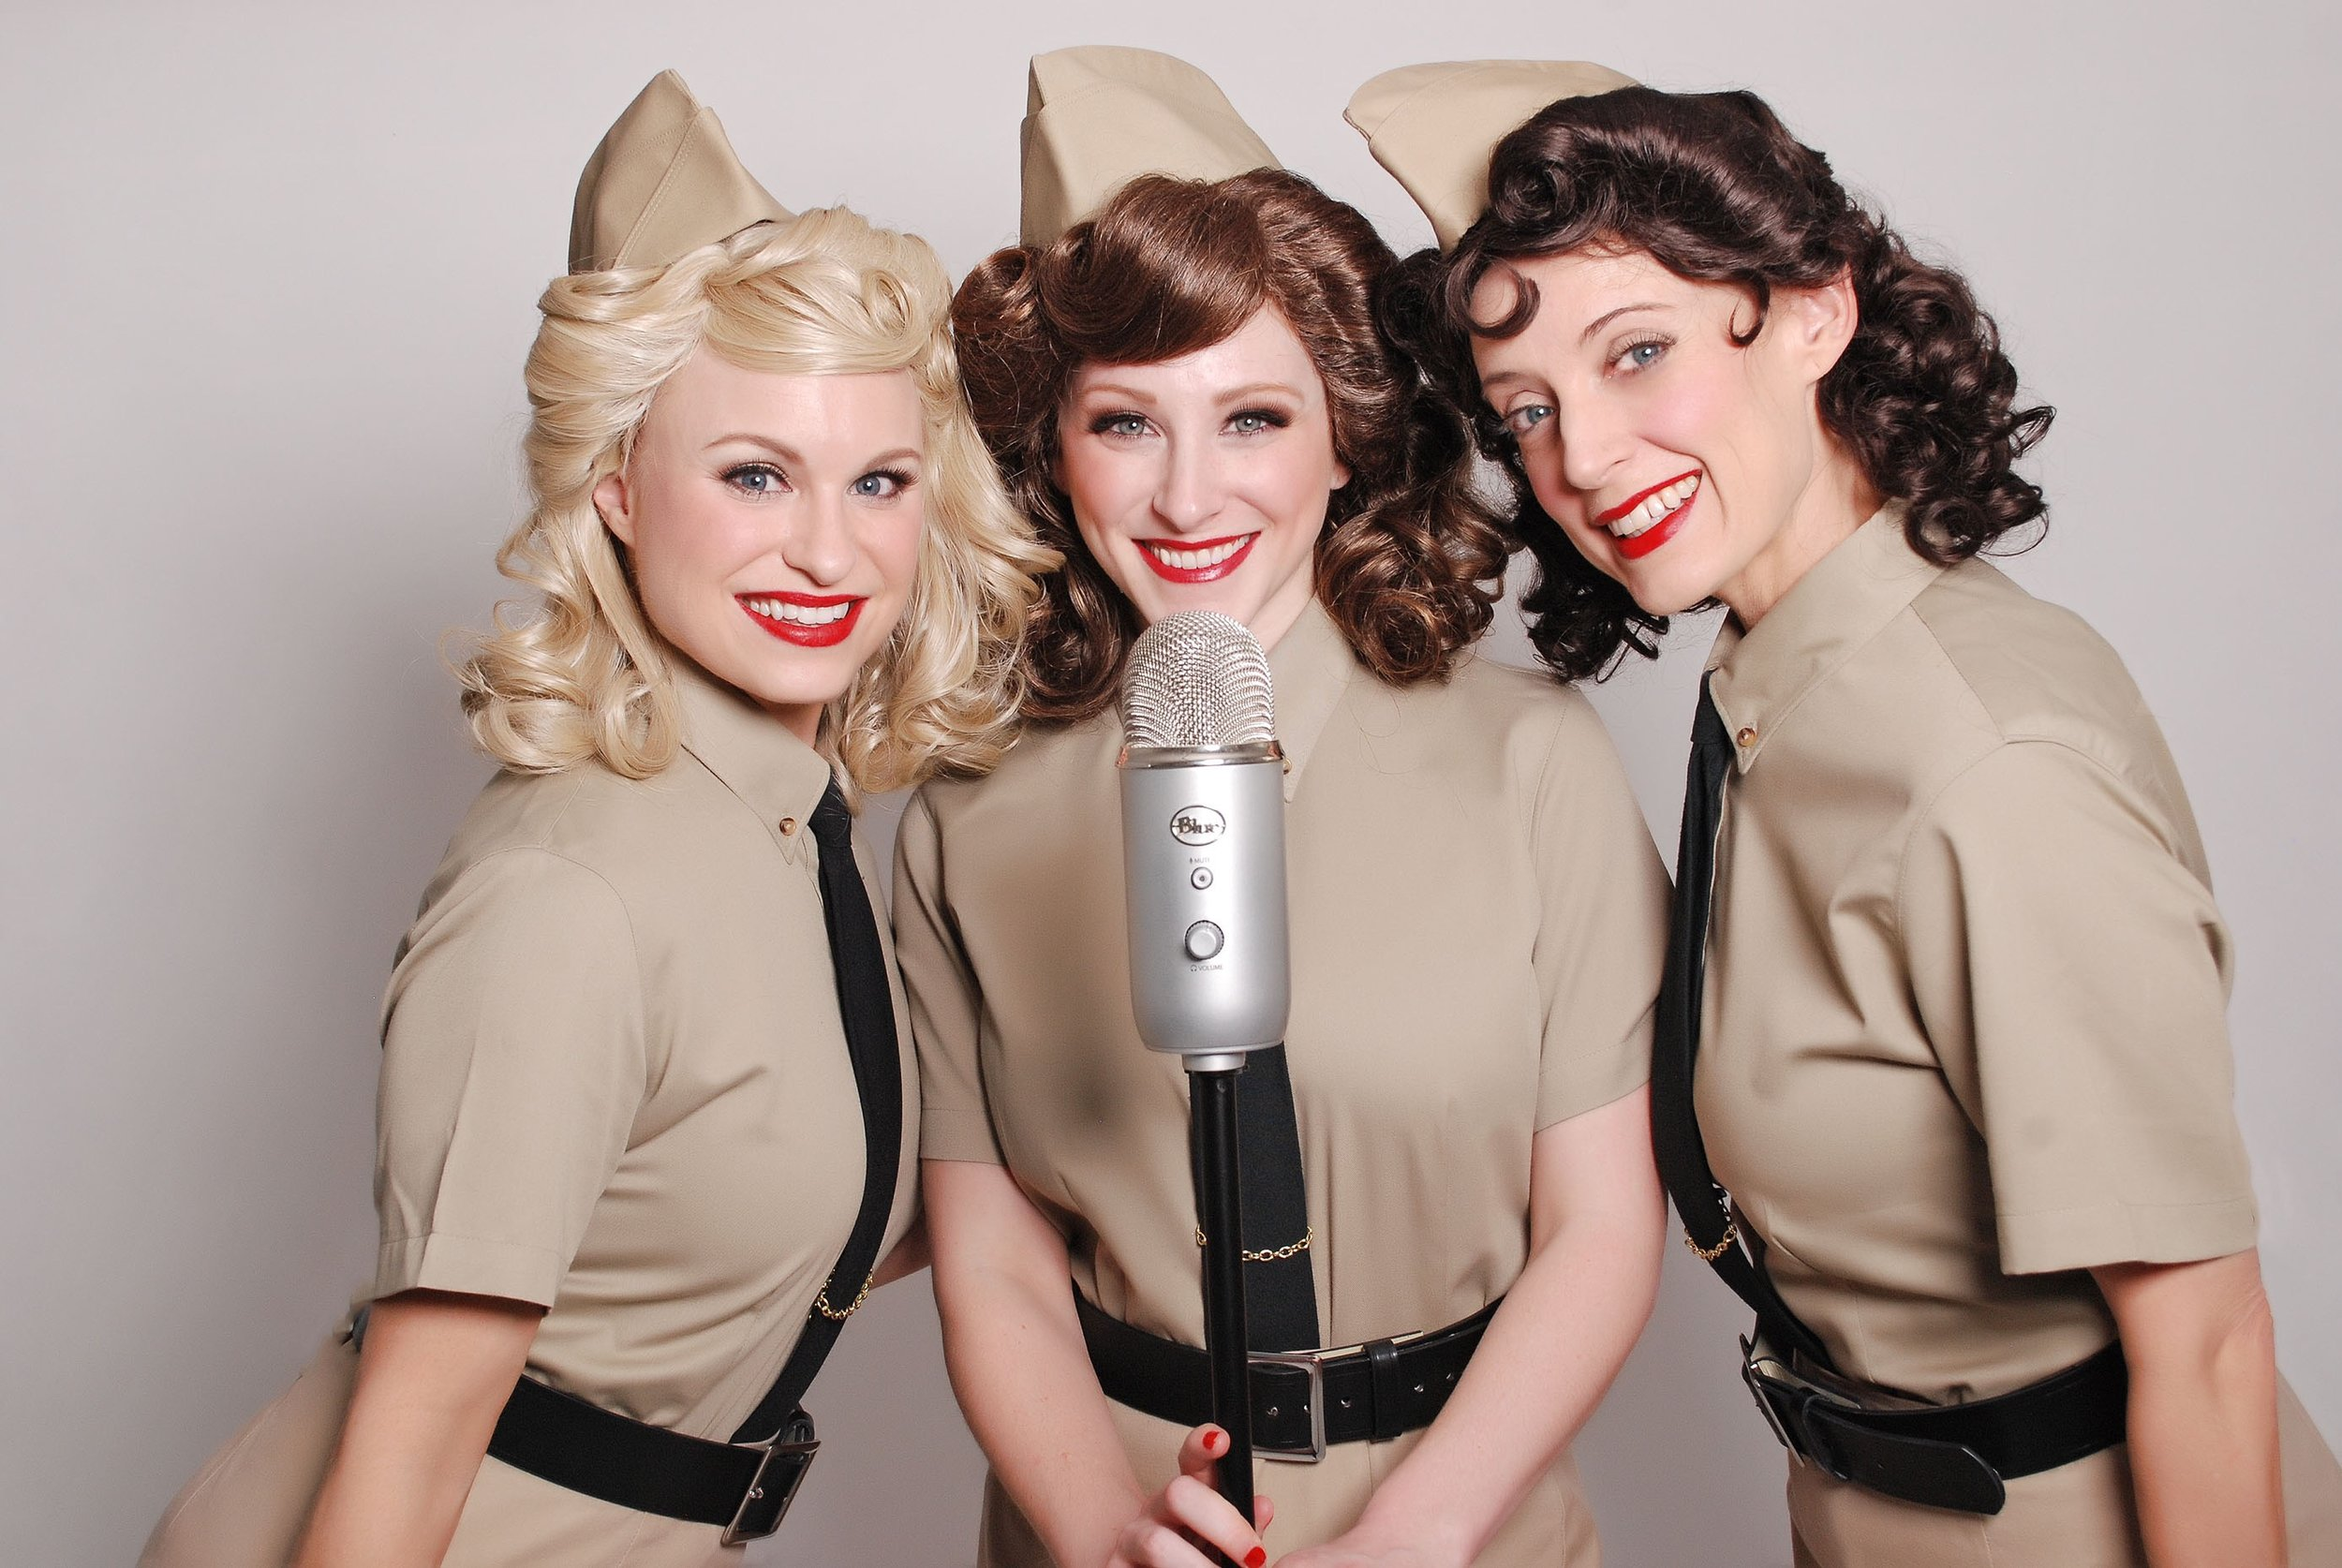 The Swing Dolls as The Andrews Sister Blue microphone